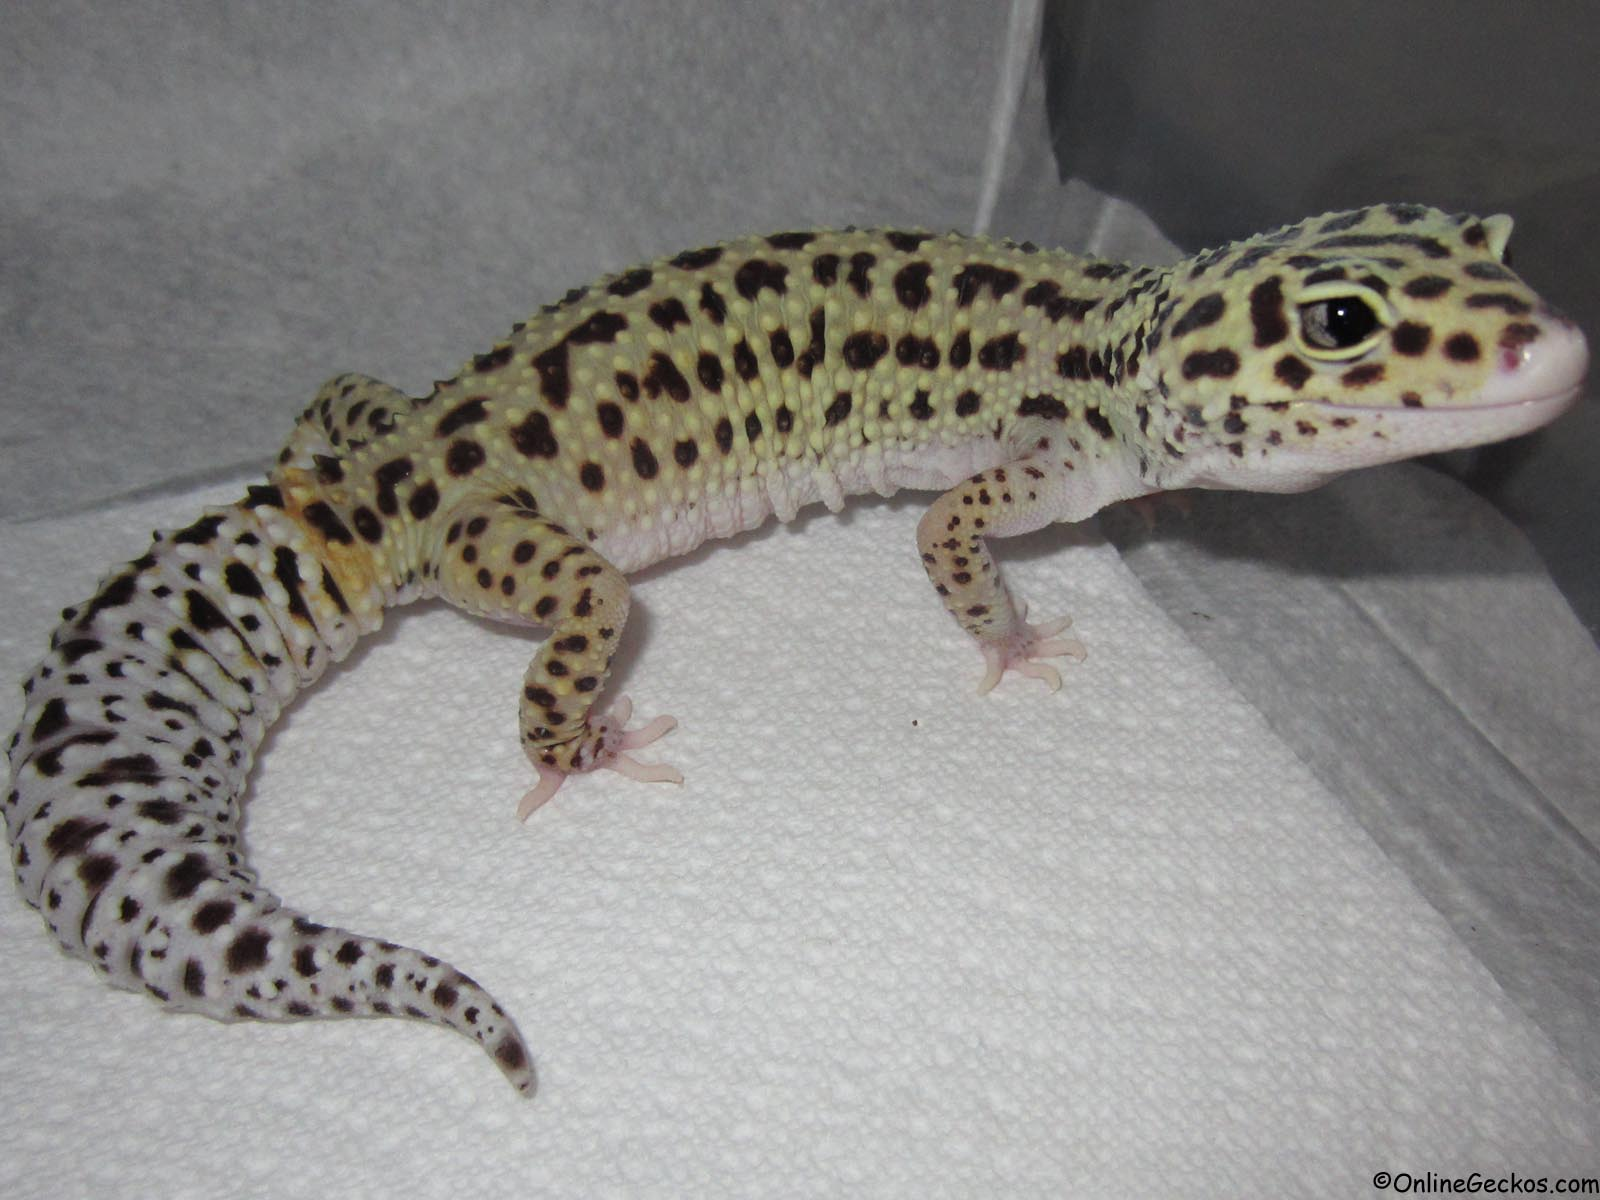 leopard gecko Find healthy and active leopard geckos for sale online at reptmart order here to have live reptiles, invertebrates and amphibians shipped directly to your door.